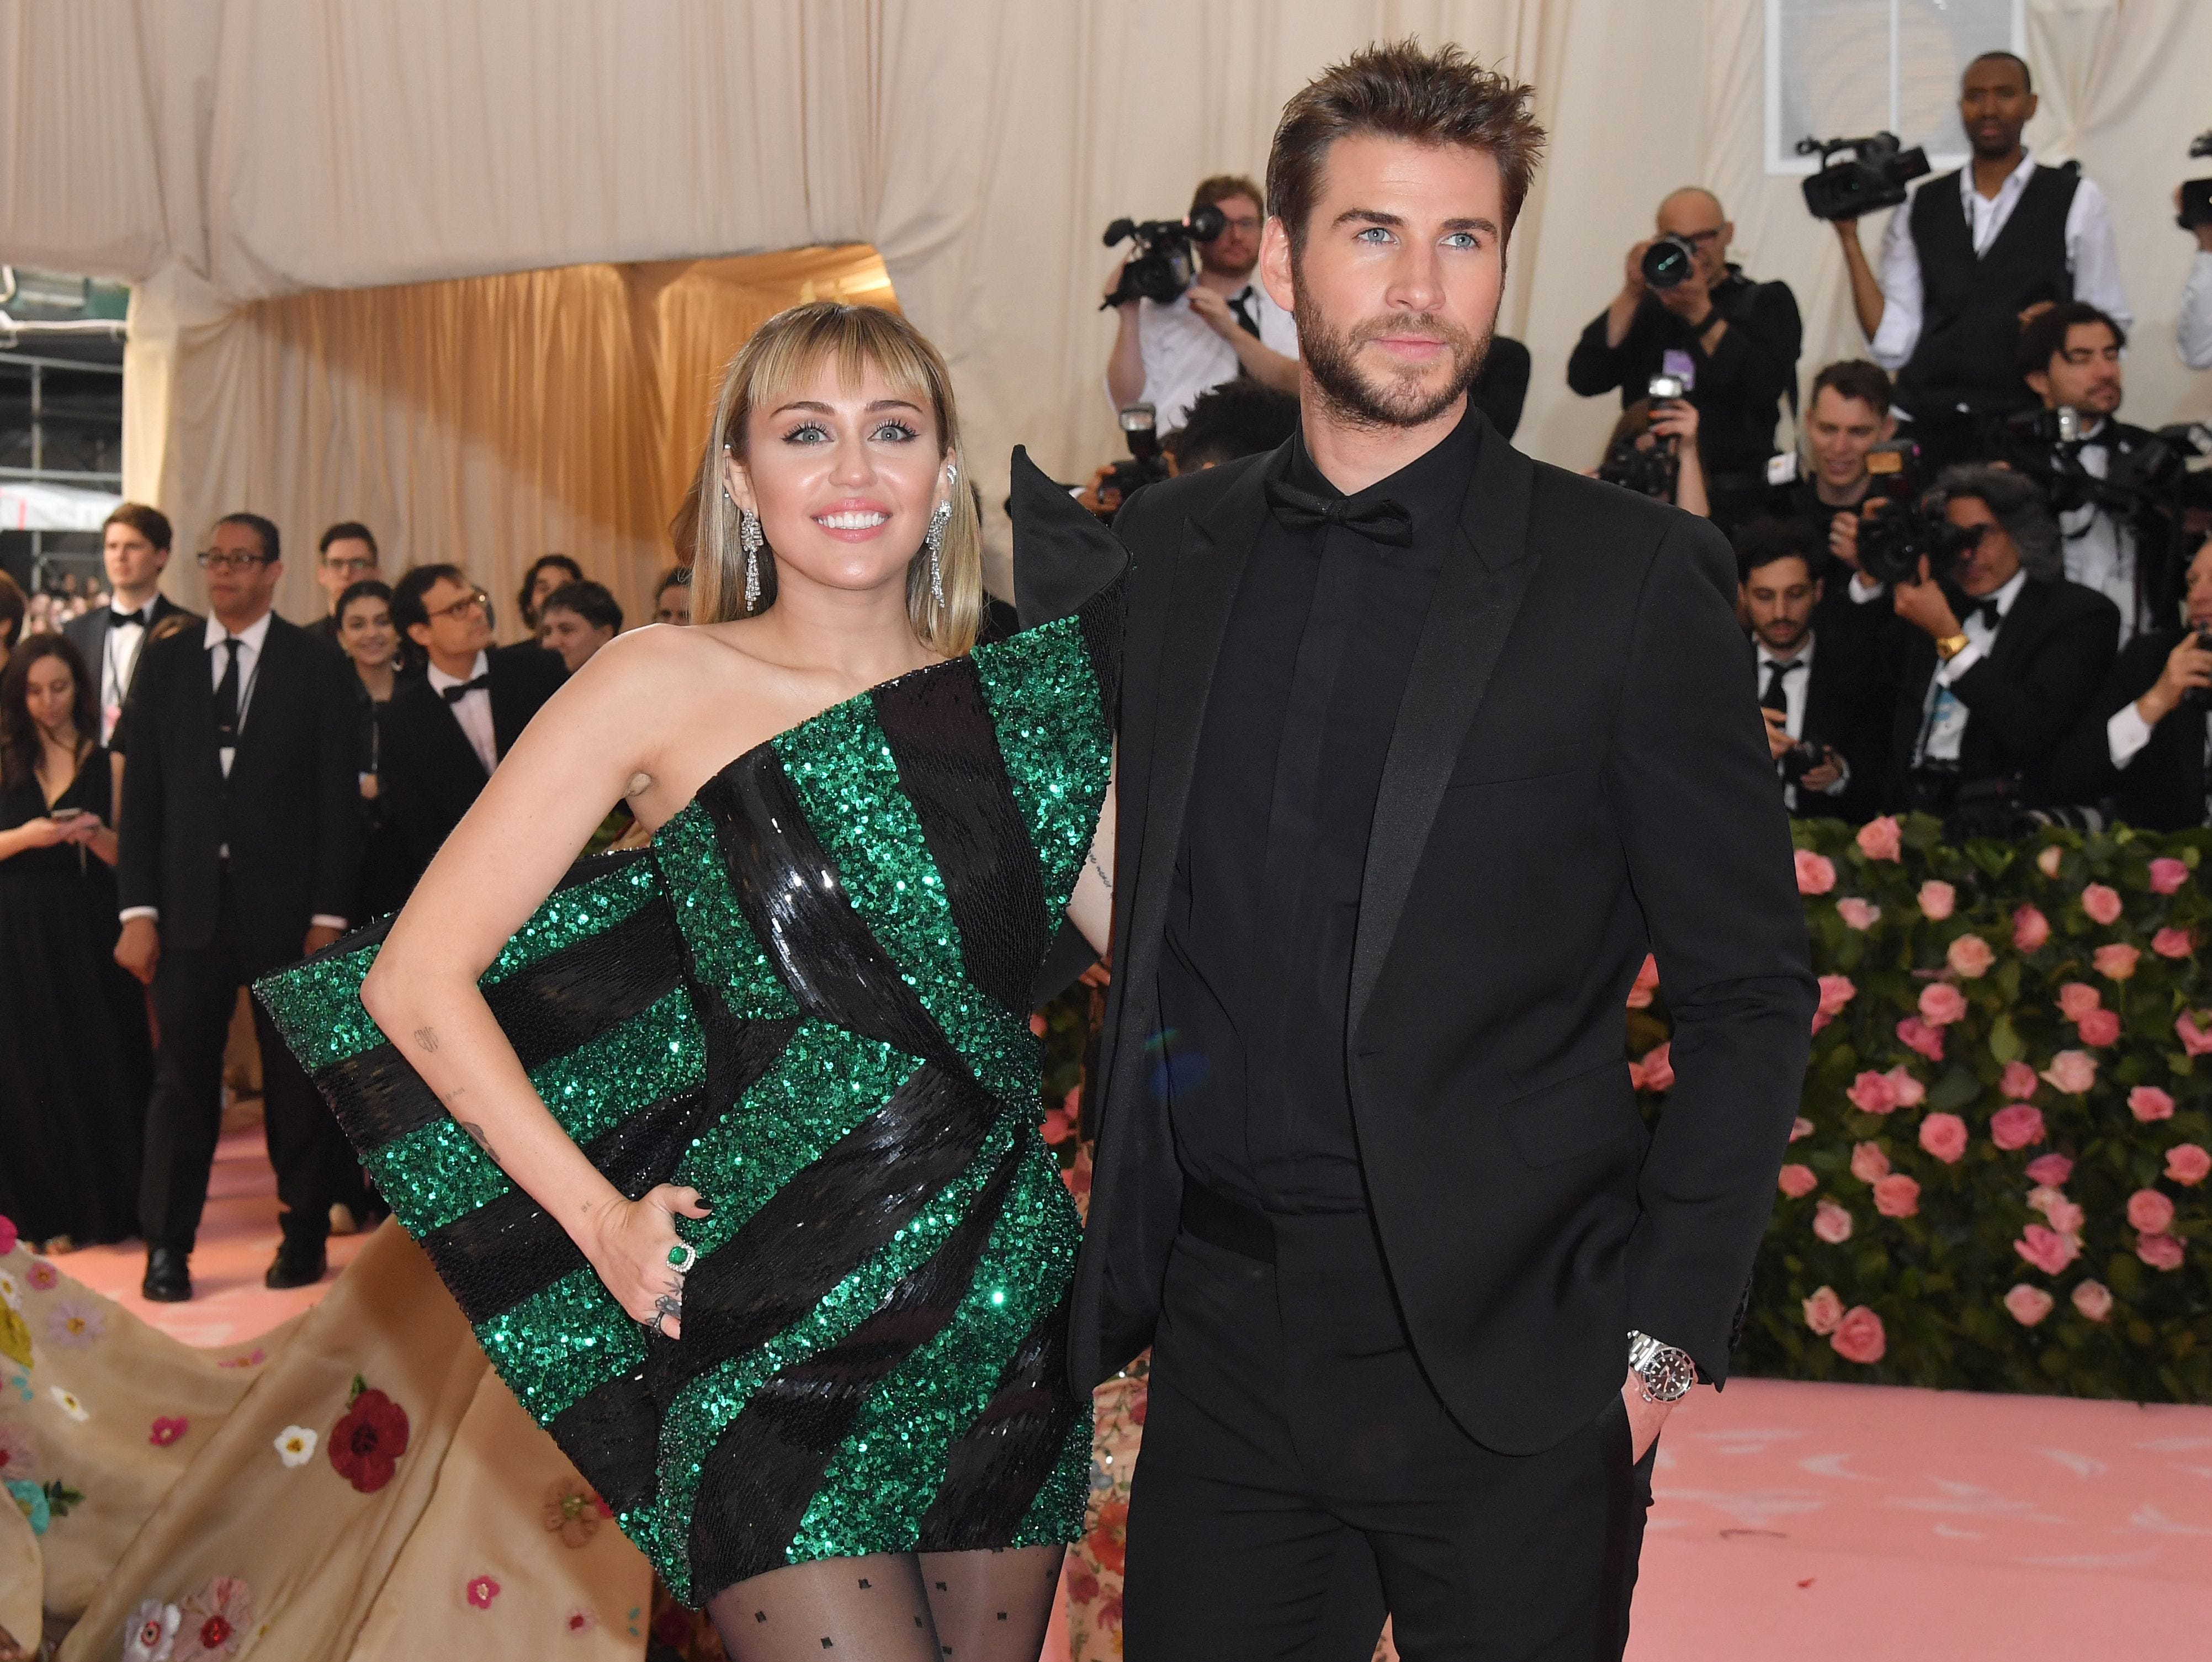 """TOPSHOT - Miley Cyrus (R) and Liam Hemsworth arrive for the 2019 Met Gala at the Metropolitan Museum of Art on May 6, 2019, in New York. - The Gala raises money for the Metropolitan Museum of Arts Costume Institute. The Gala's 2019 theme is Camp: Notes on Fashion"""" inspired by Susan Sontag's 1964 essay """"Notes on Camp"""". (Photo by ANGELA WEISS / AFP)ANGELA WEISS/AFP/Getty Images ORG XMIT: Annual Me ORIG FILE ID: AFP_1G83AL"""